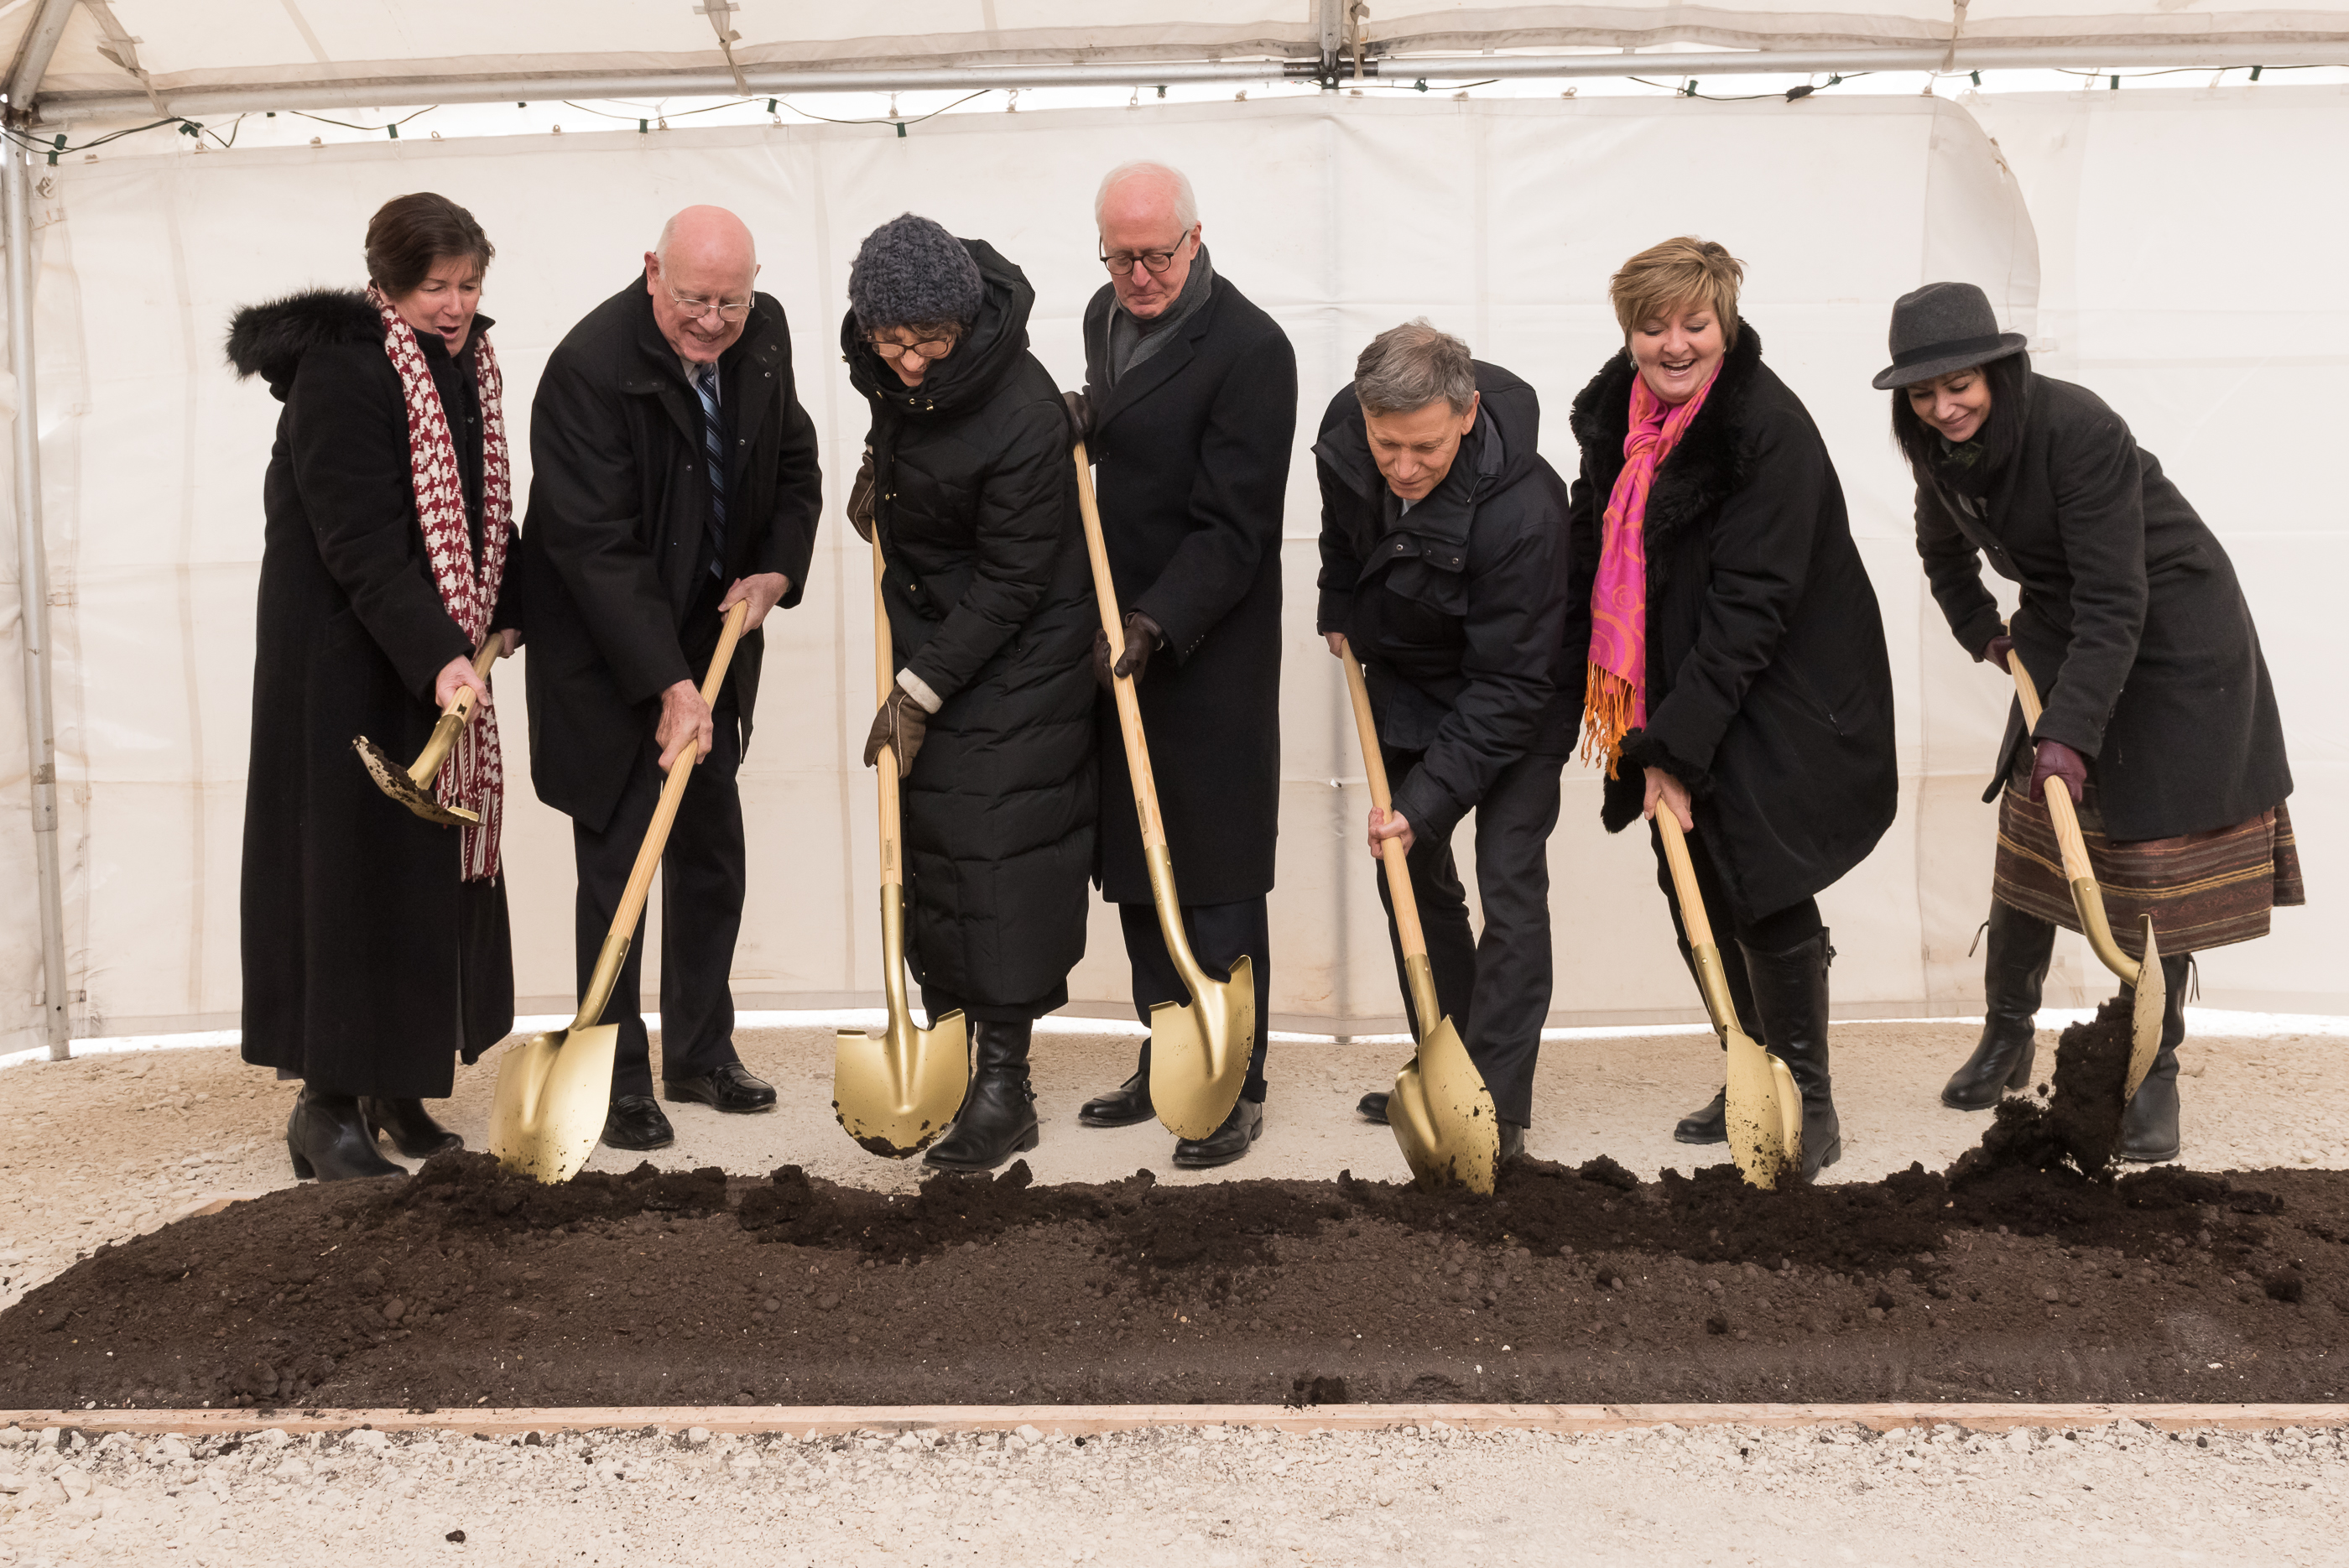 Elder Larry Y. Wilson, middle, leads the groundbreaking at the Winnipeg Manitoba Temple site on Dec. 3, 2016.